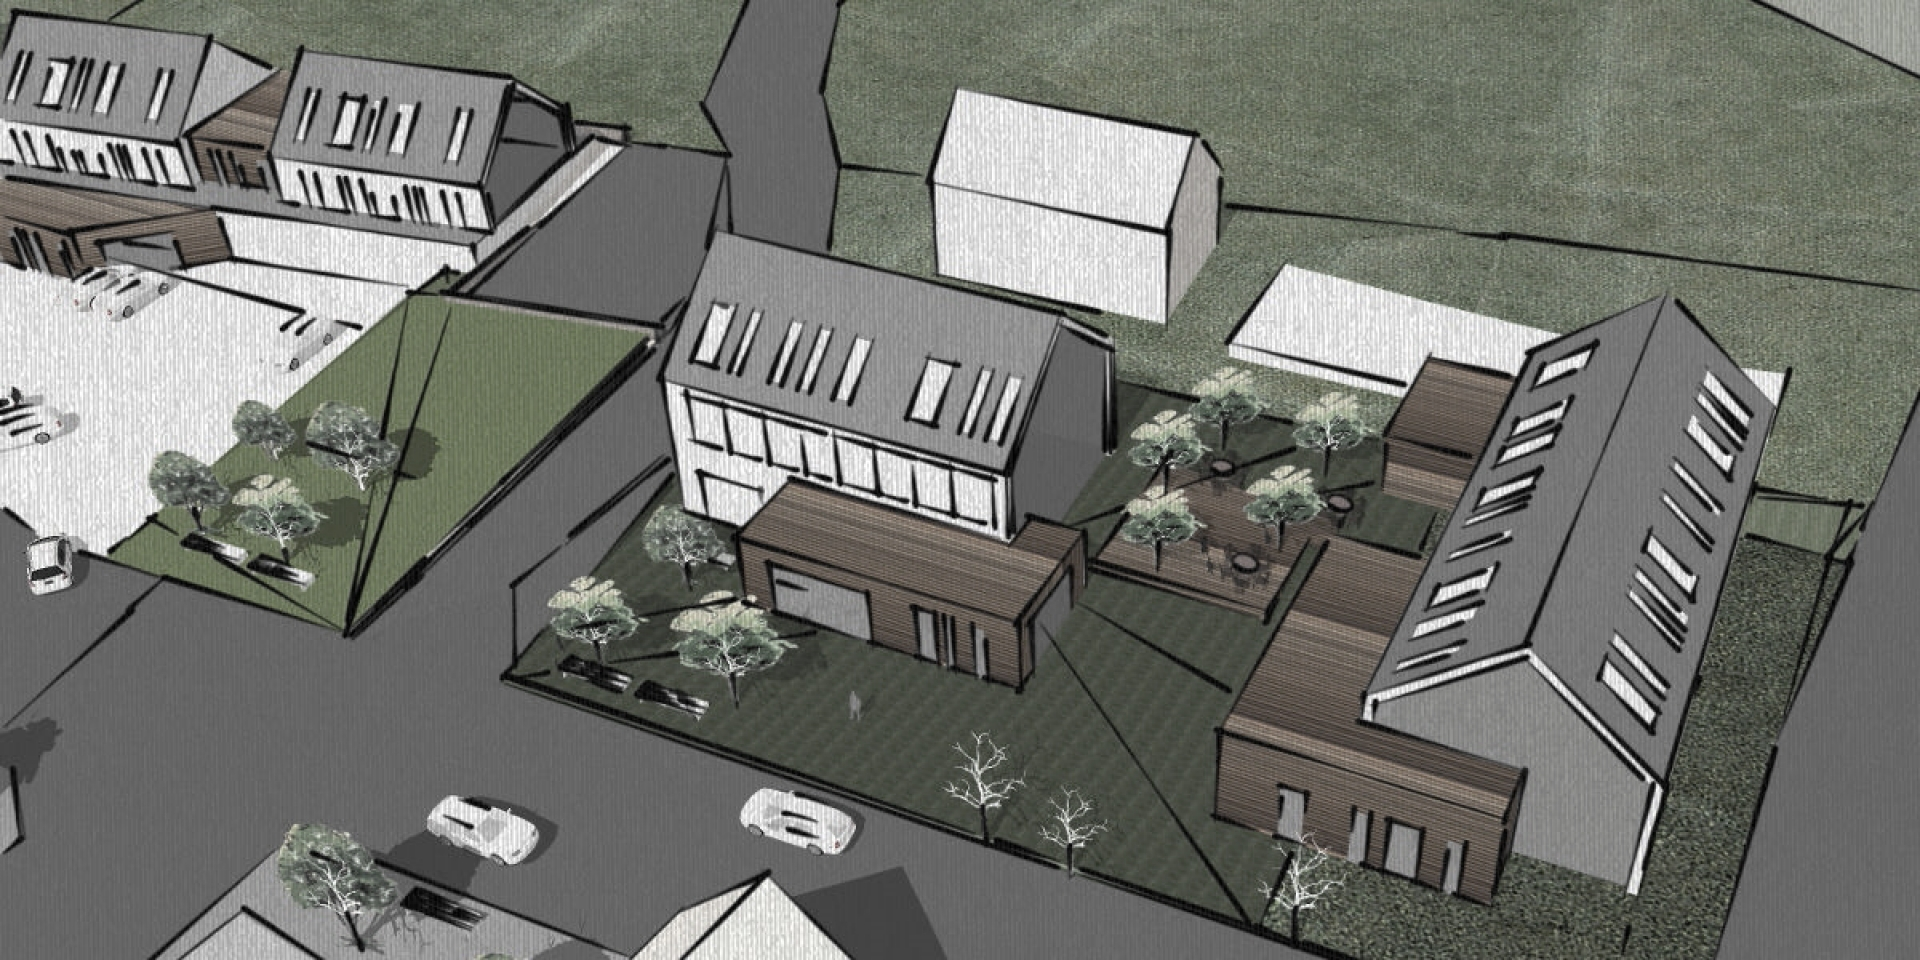 architekt buchholz architektur architektin region. Black Bedroom Furniture Sets. Home Design Ideas